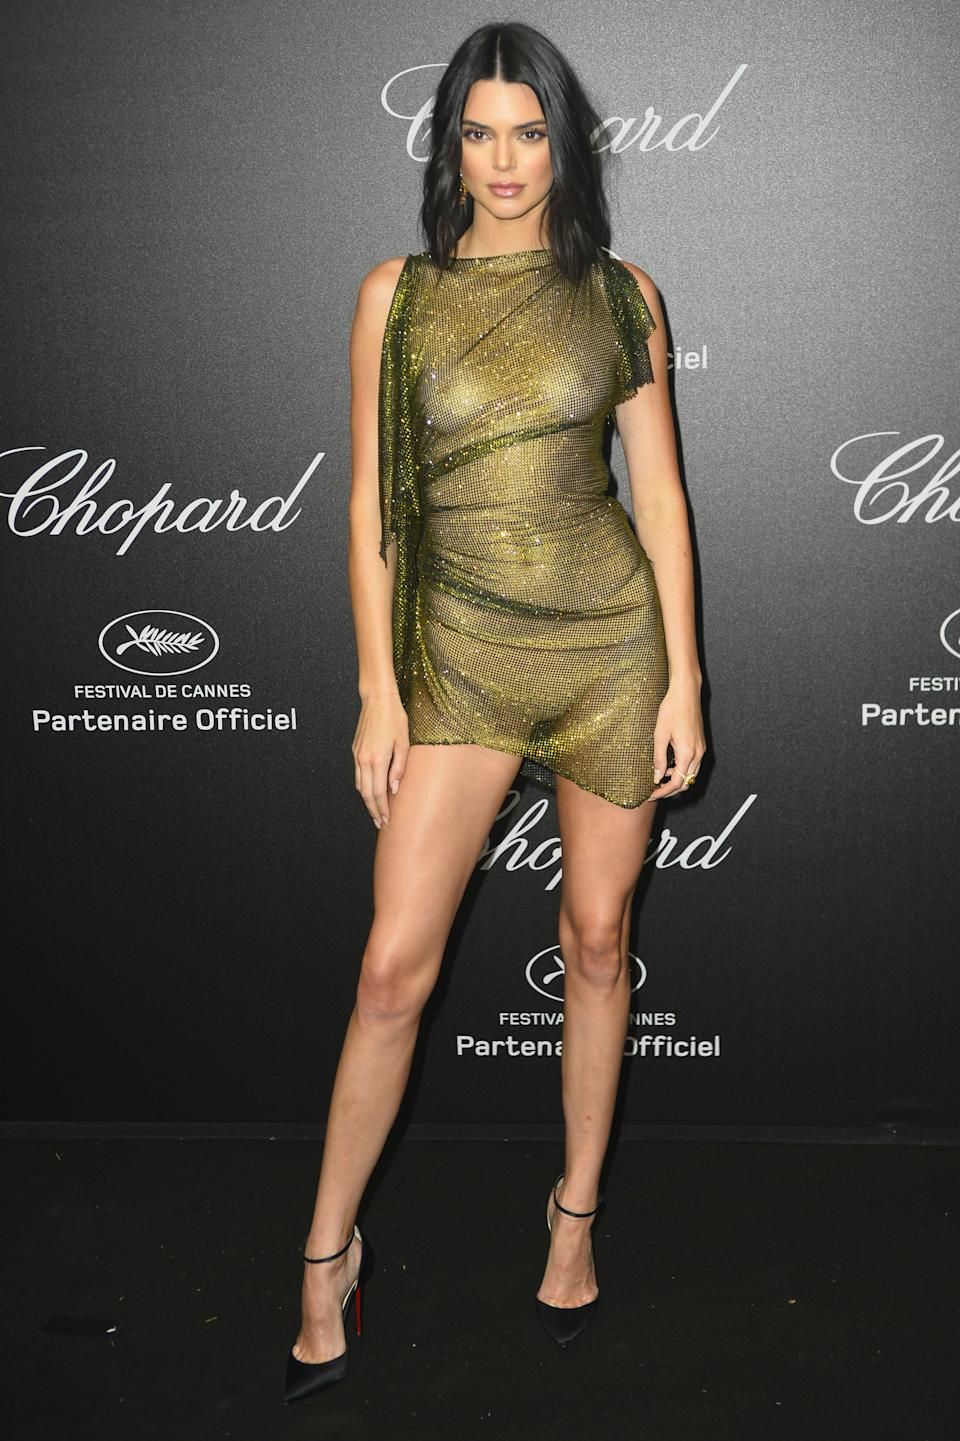 Para <em>naked dress </em>el Alexandre Vauthier que lució en la Chopard Secret Night Party celebrada durante el Festival de Cannes. ¡Sin comentarios! (Foto: Gtres).